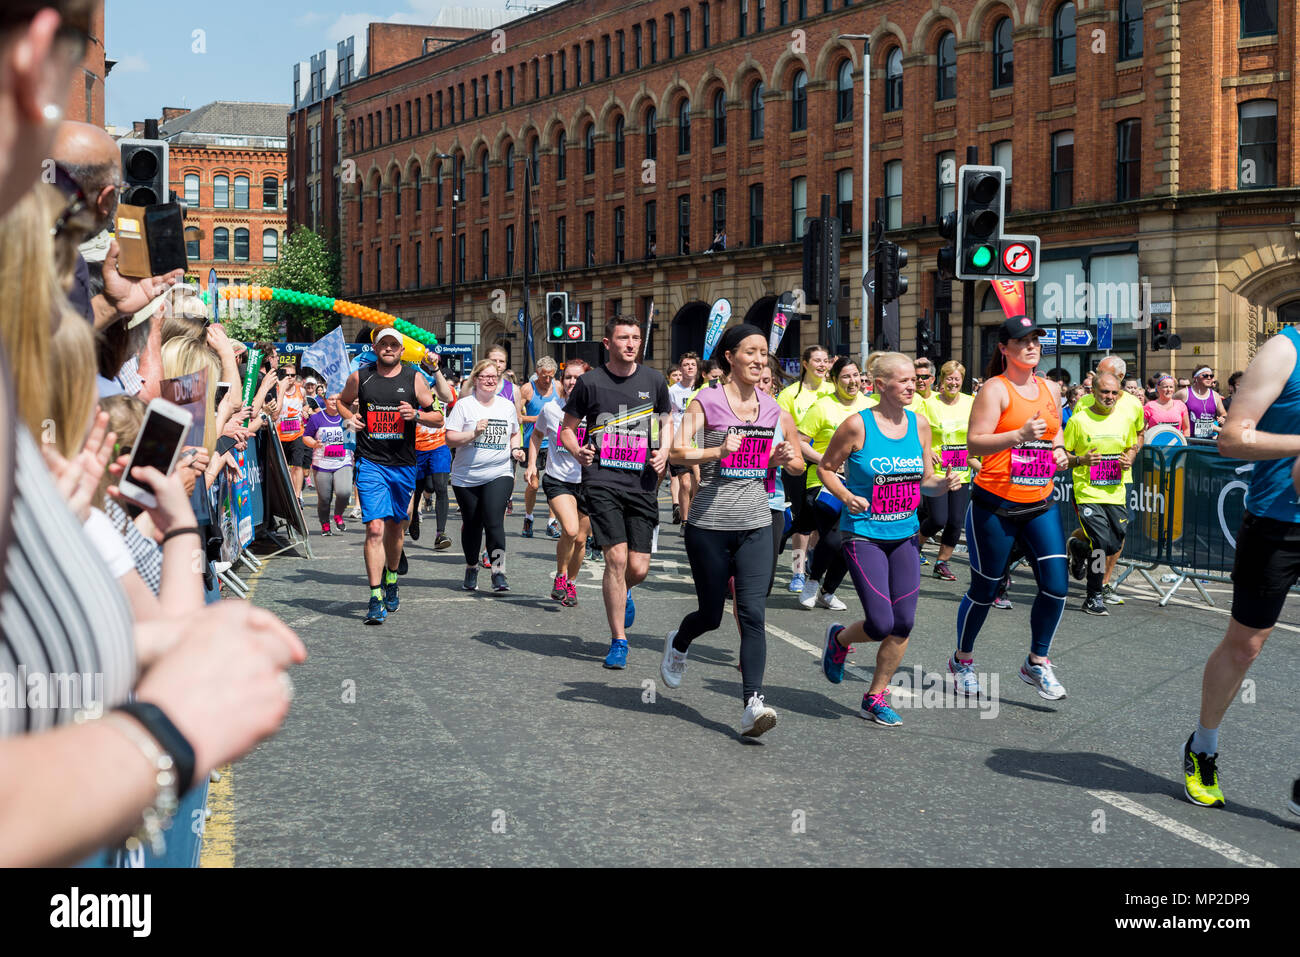 MANCHESTER, ENGLAND - 20 MAY, 2018: RUN for Manchester MARATHON in England UK - Stock Image